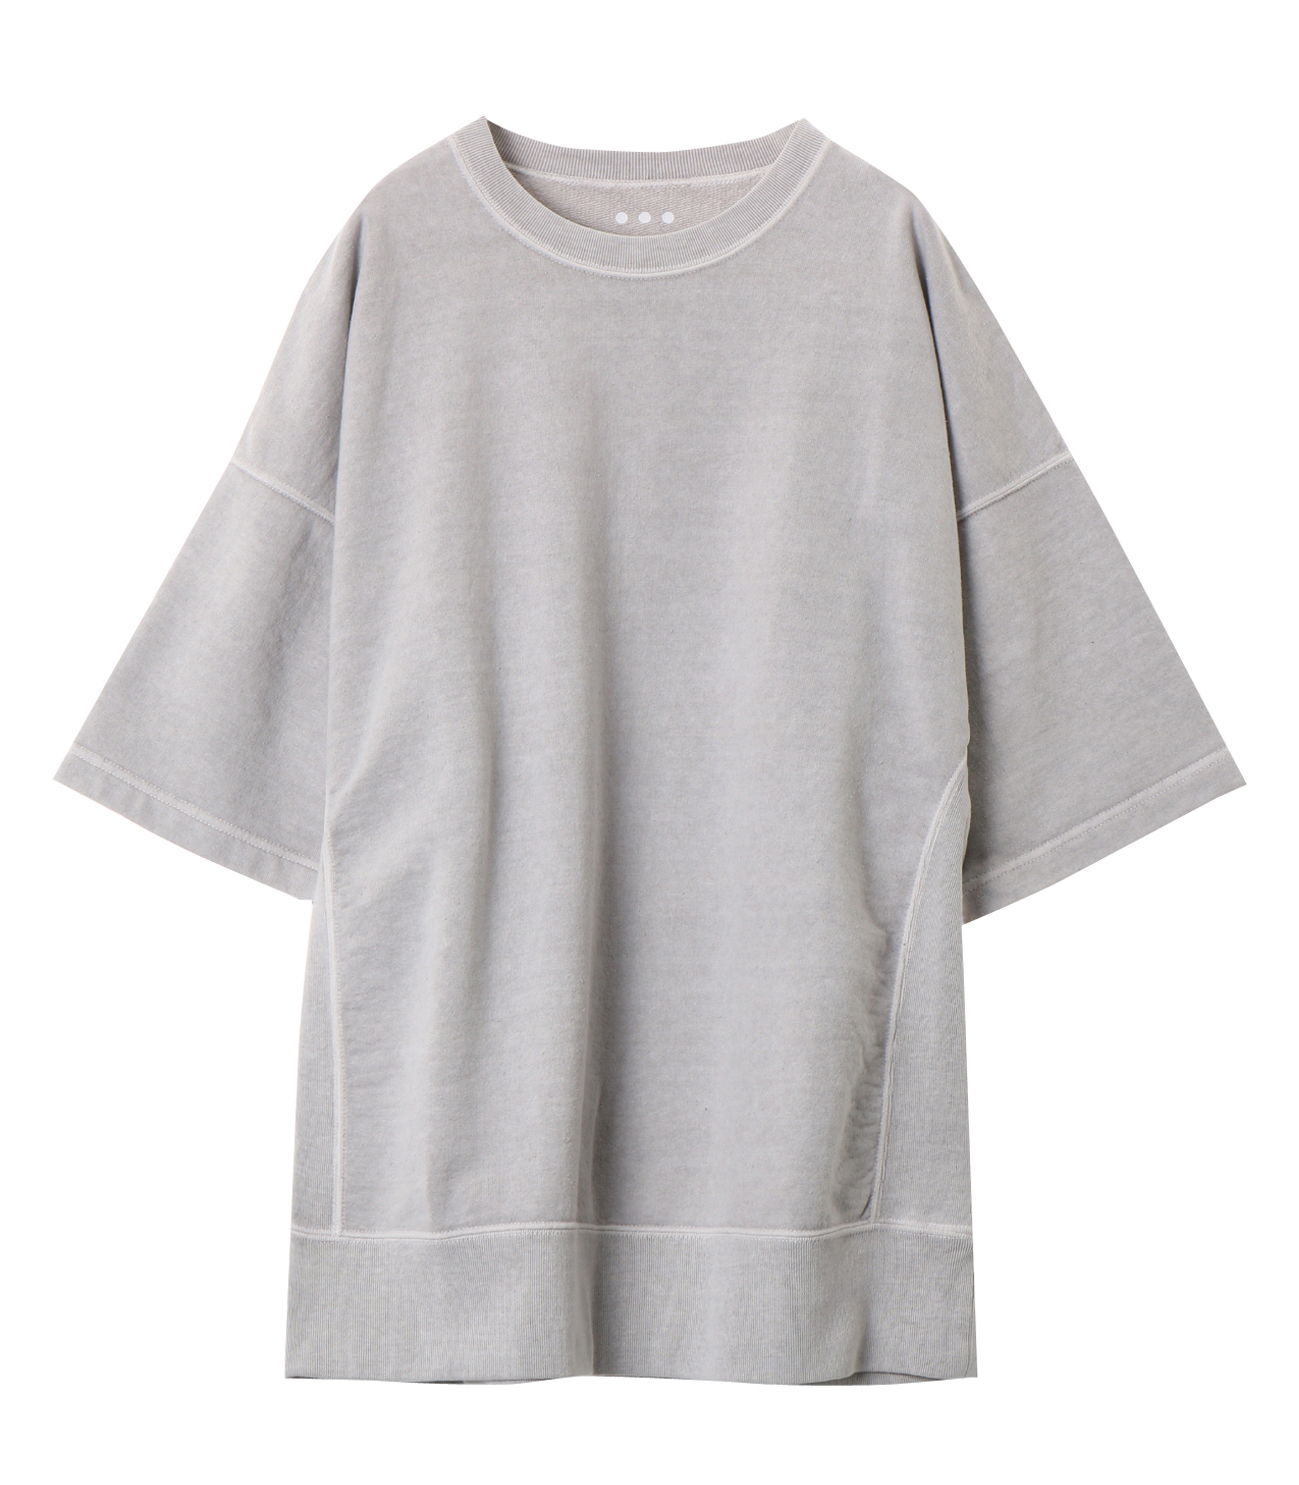 pigment dye cotton s/s  sweat 詳細画像 grey 1